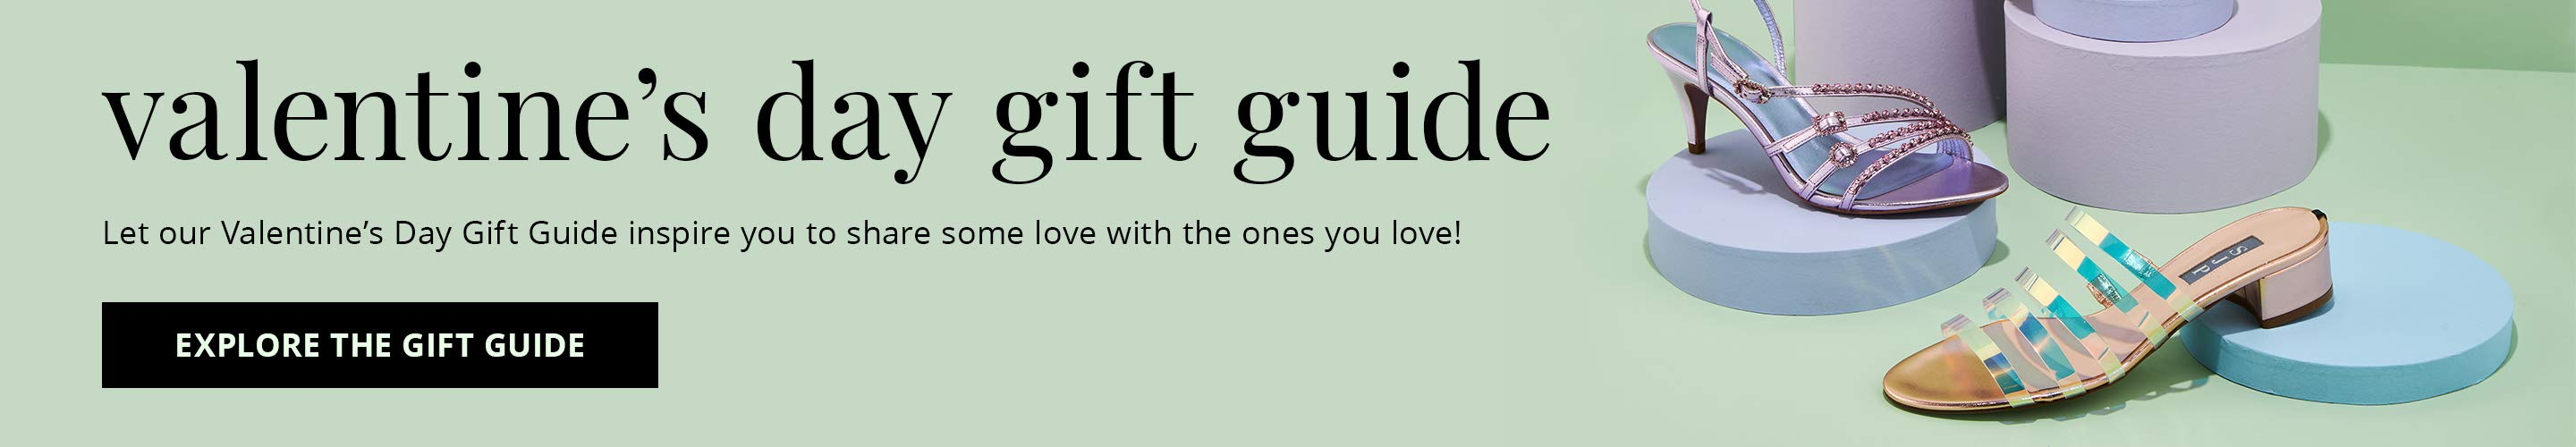 Valentine's Day Gift Guide. from you, with love. Let our Valentine's Day Gift Guide inspire you to share some love with the ones you love. Explore the gift guide.